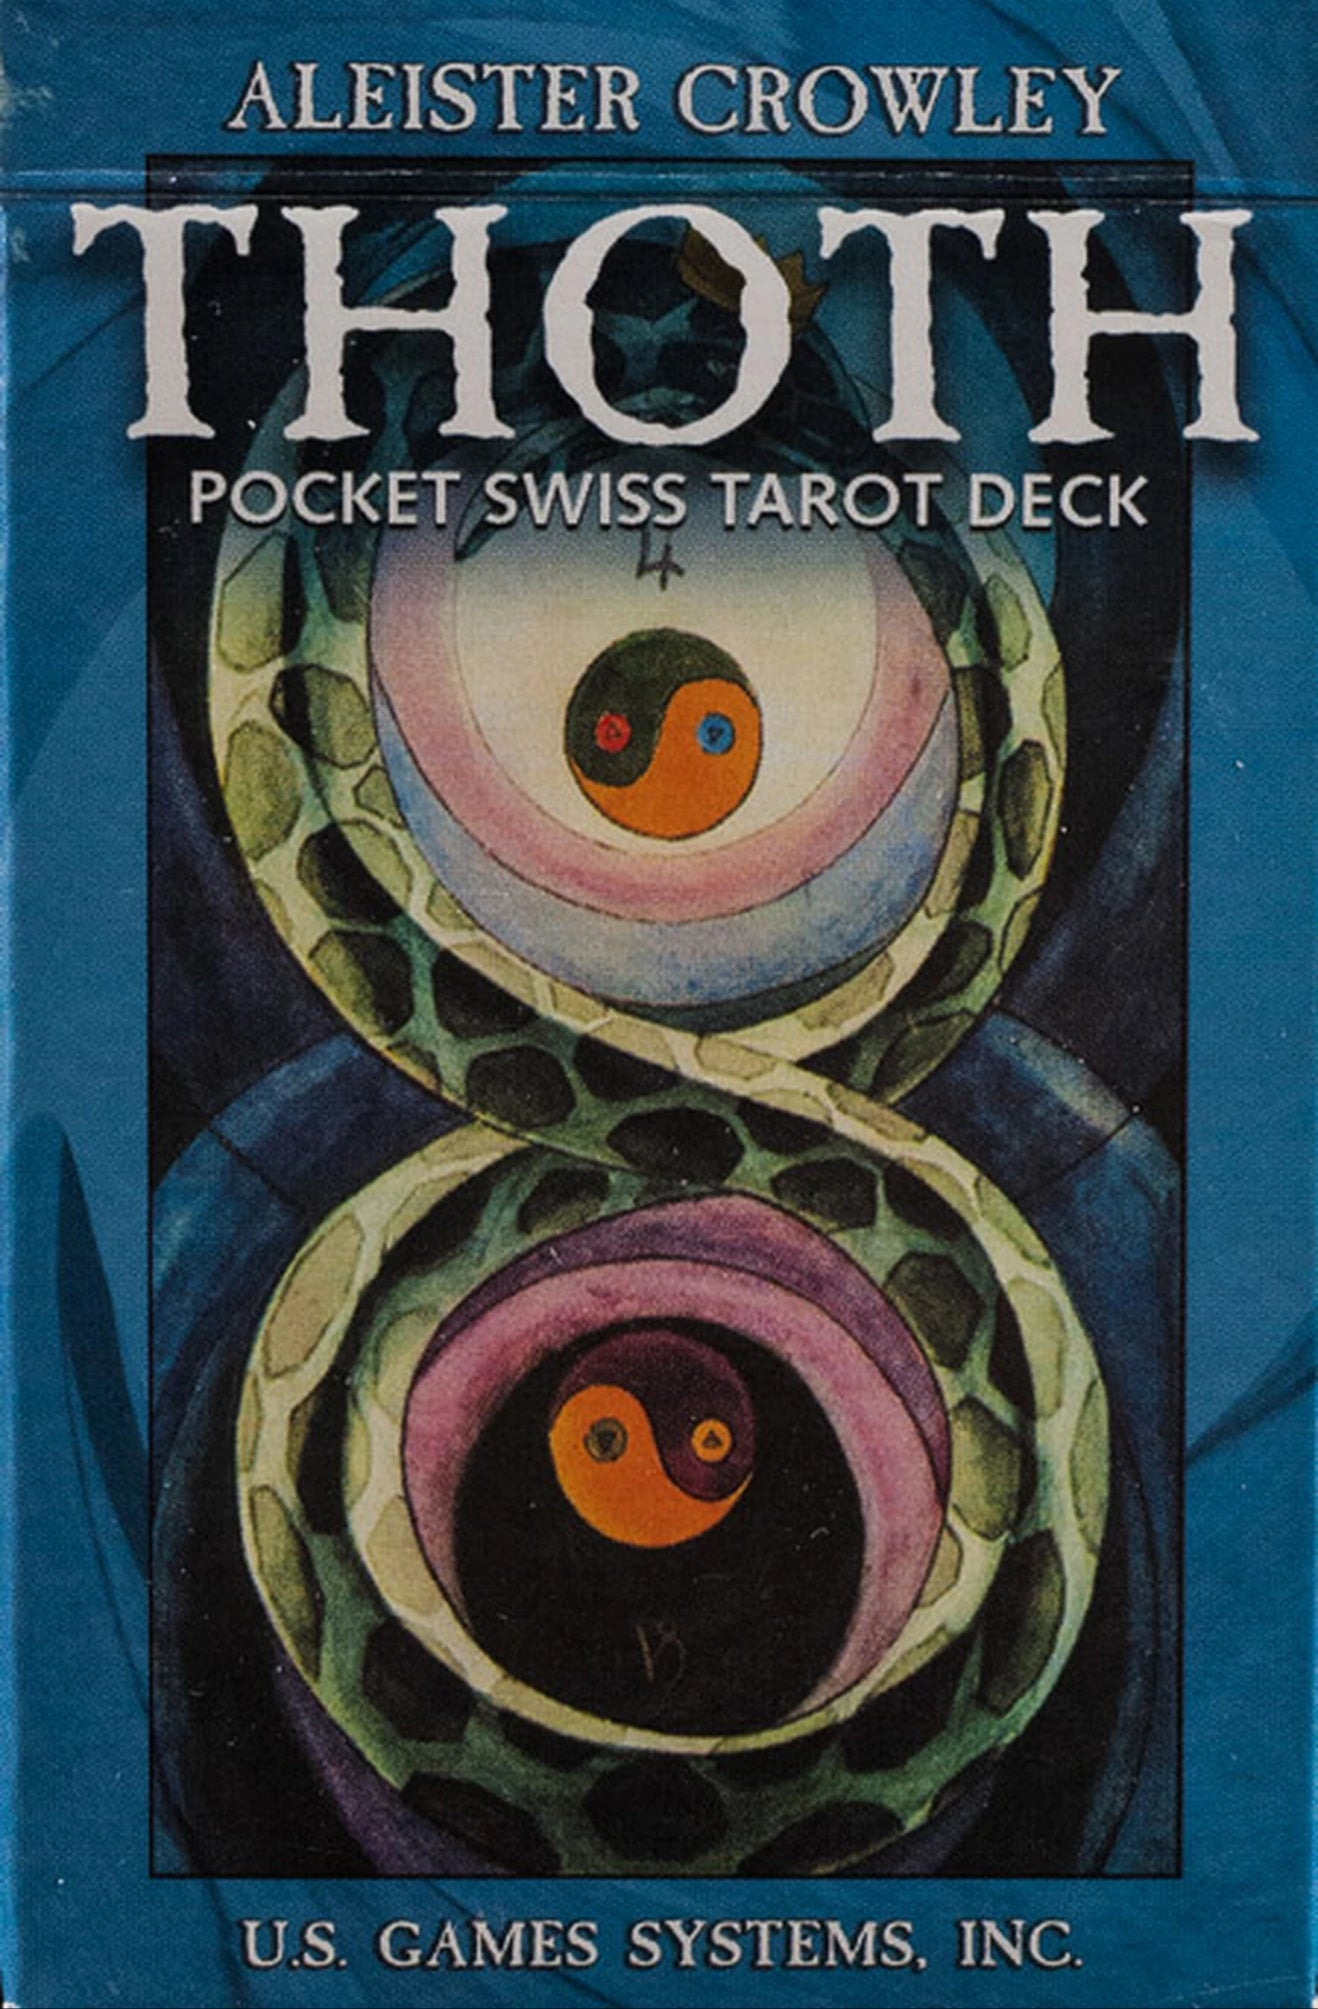 Thoth Pocket Swiss Tarot Deck (Aleister Crowley)